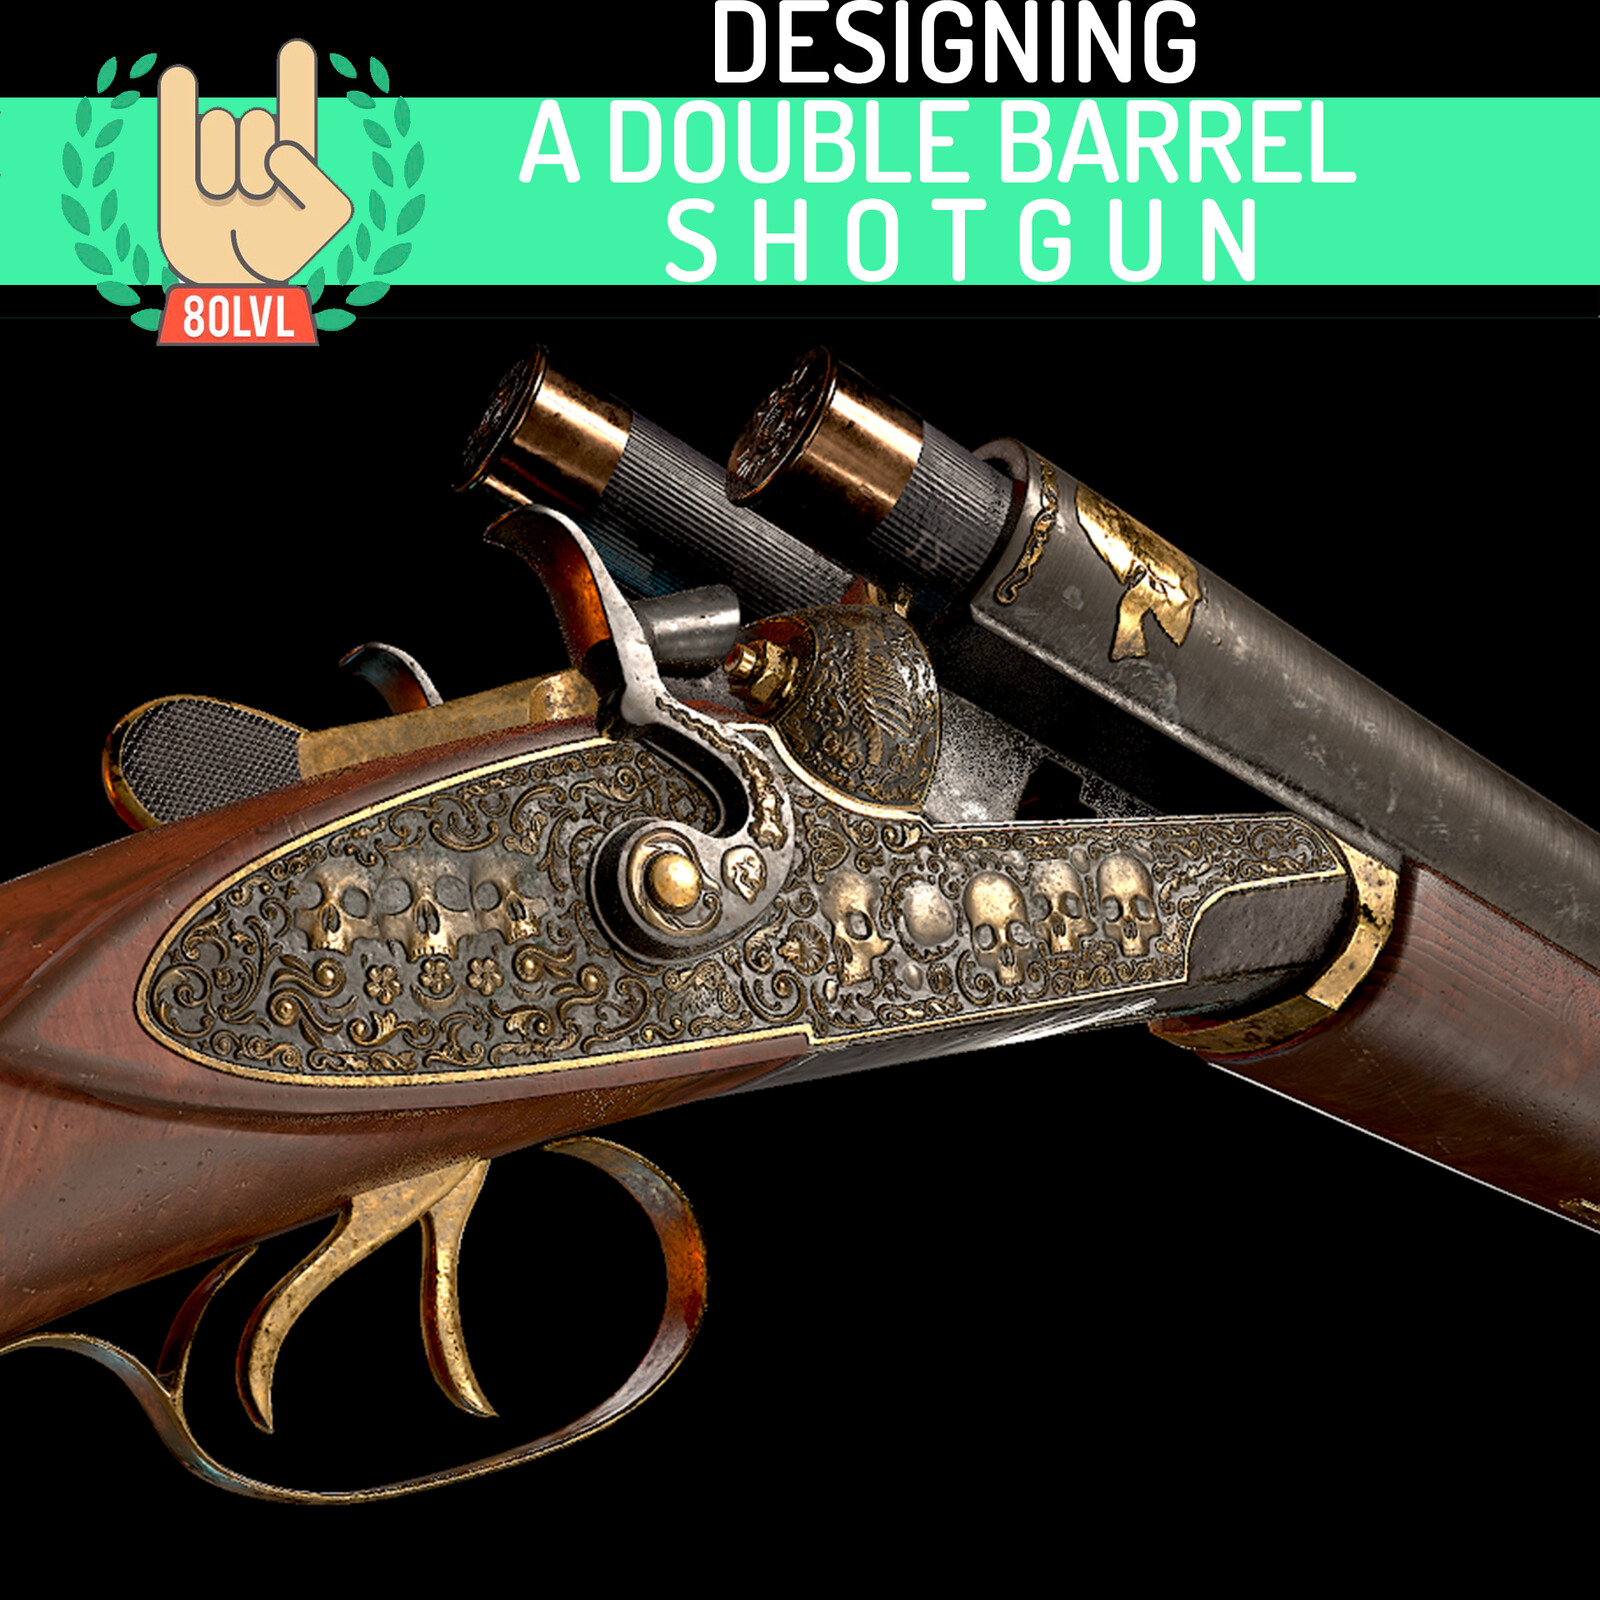 Designing a Double Barrel Shotgun